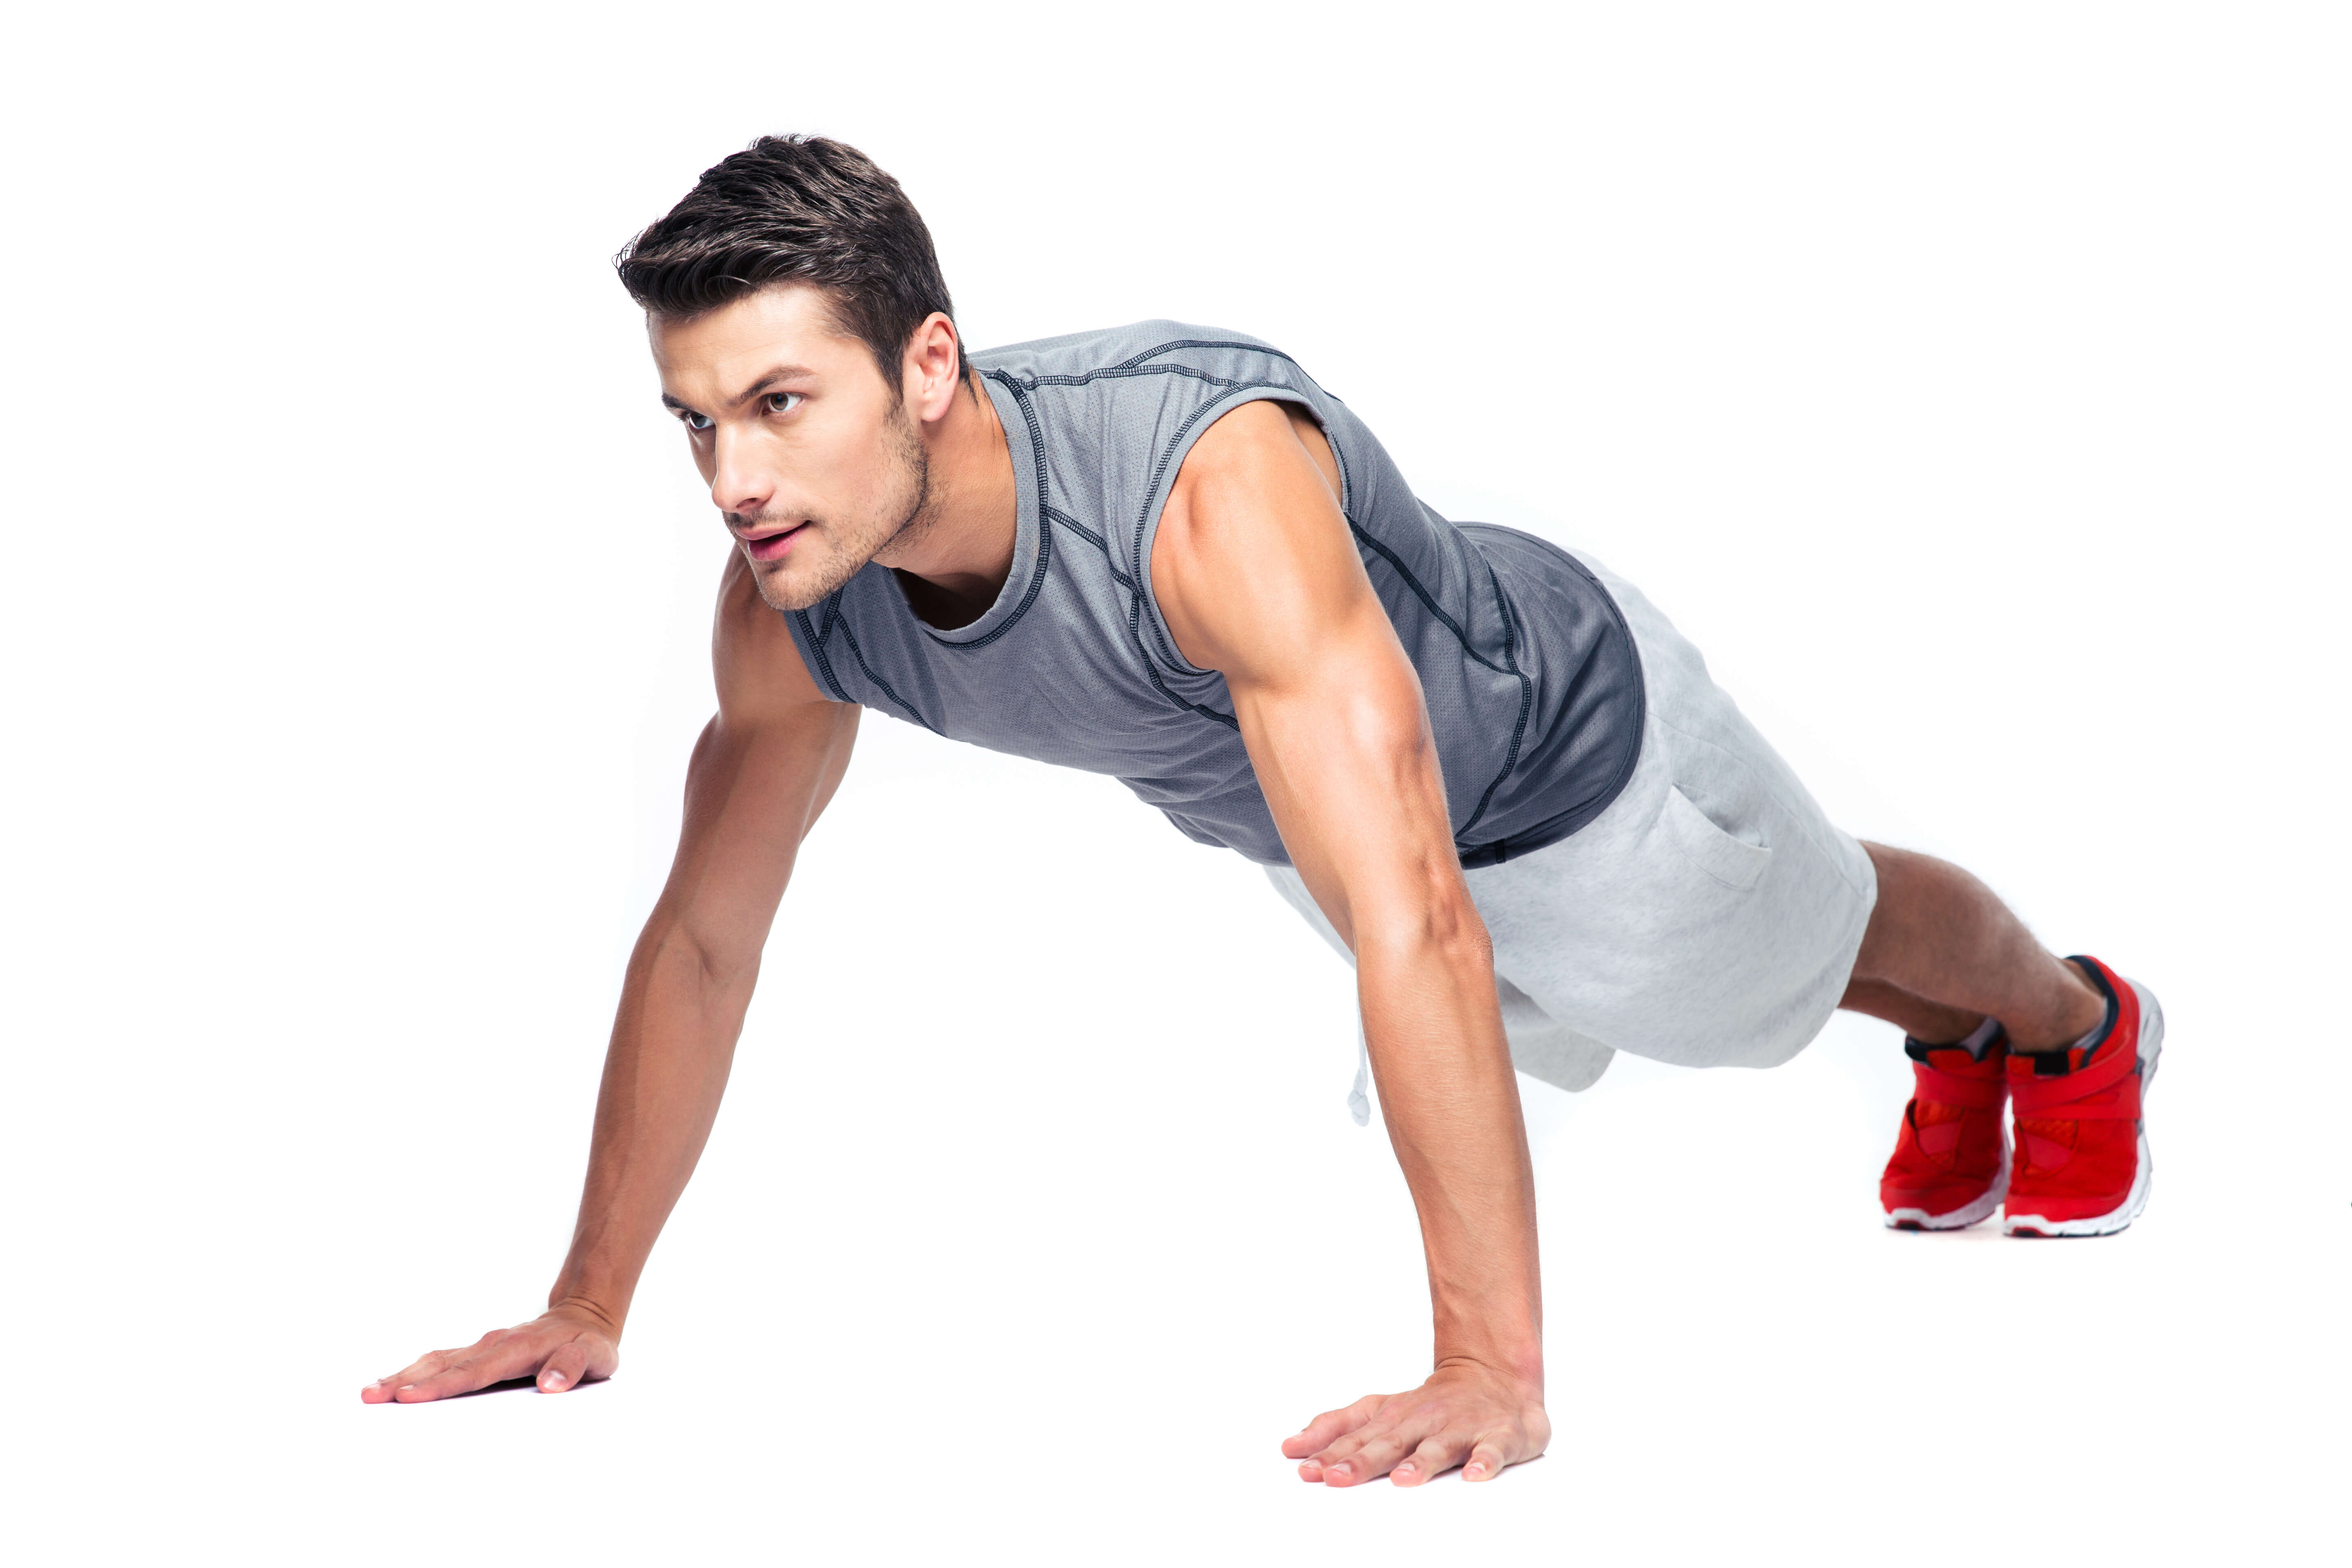 Group X fitness classes man in plank